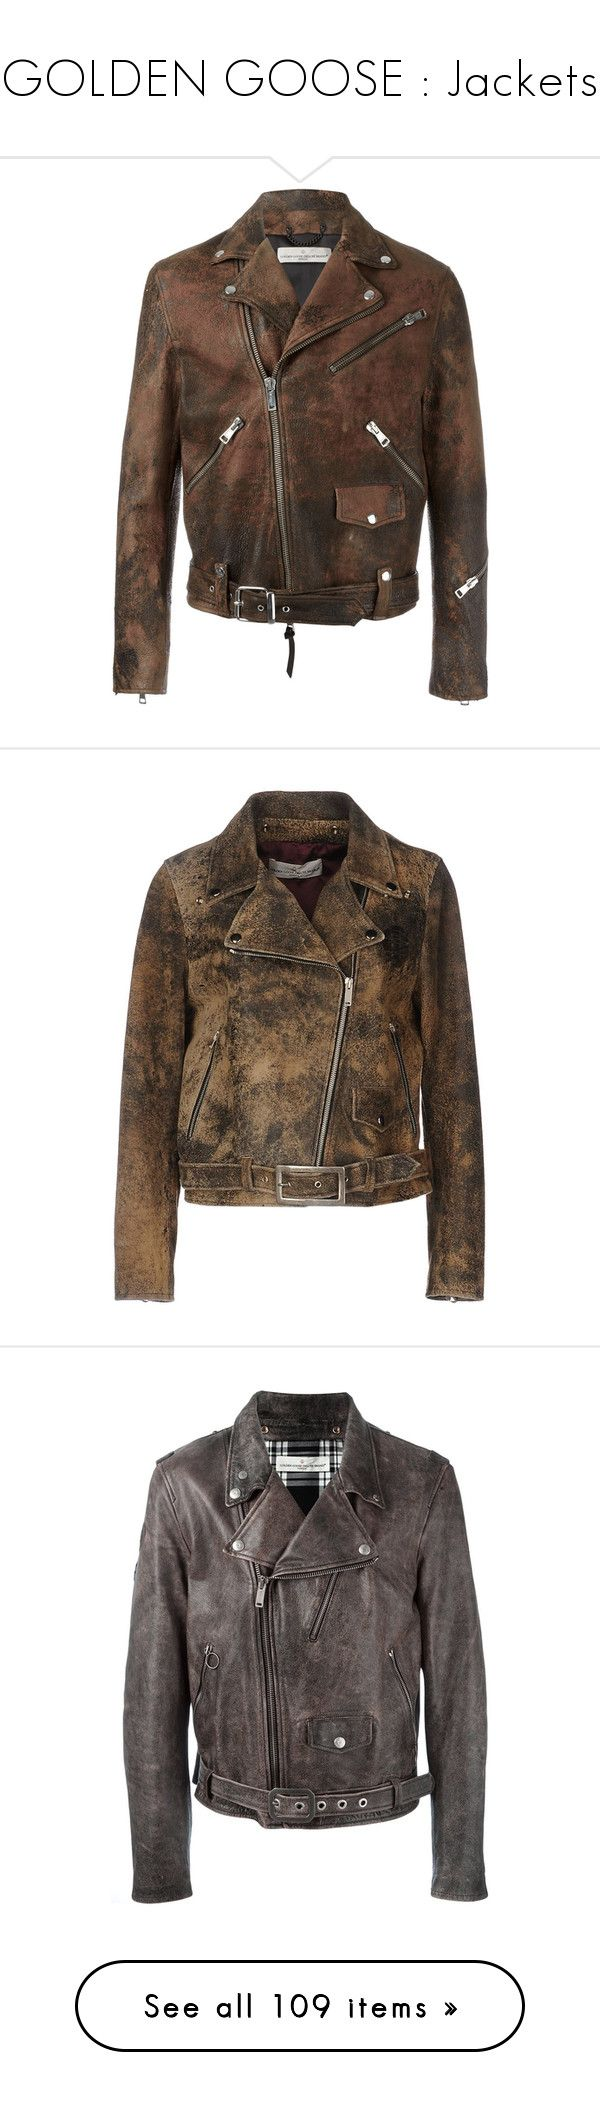 """""""GOLDEN GOOSE : Jackets"""" by bianca-cazacu ❤ liked on Polyvore featuring men's fashion, men's clothing, men's outerwear, men's jackets, brown, mens brown jacket, mens brown leather motorcycle jacket, outerwear, jackets and khaki"""